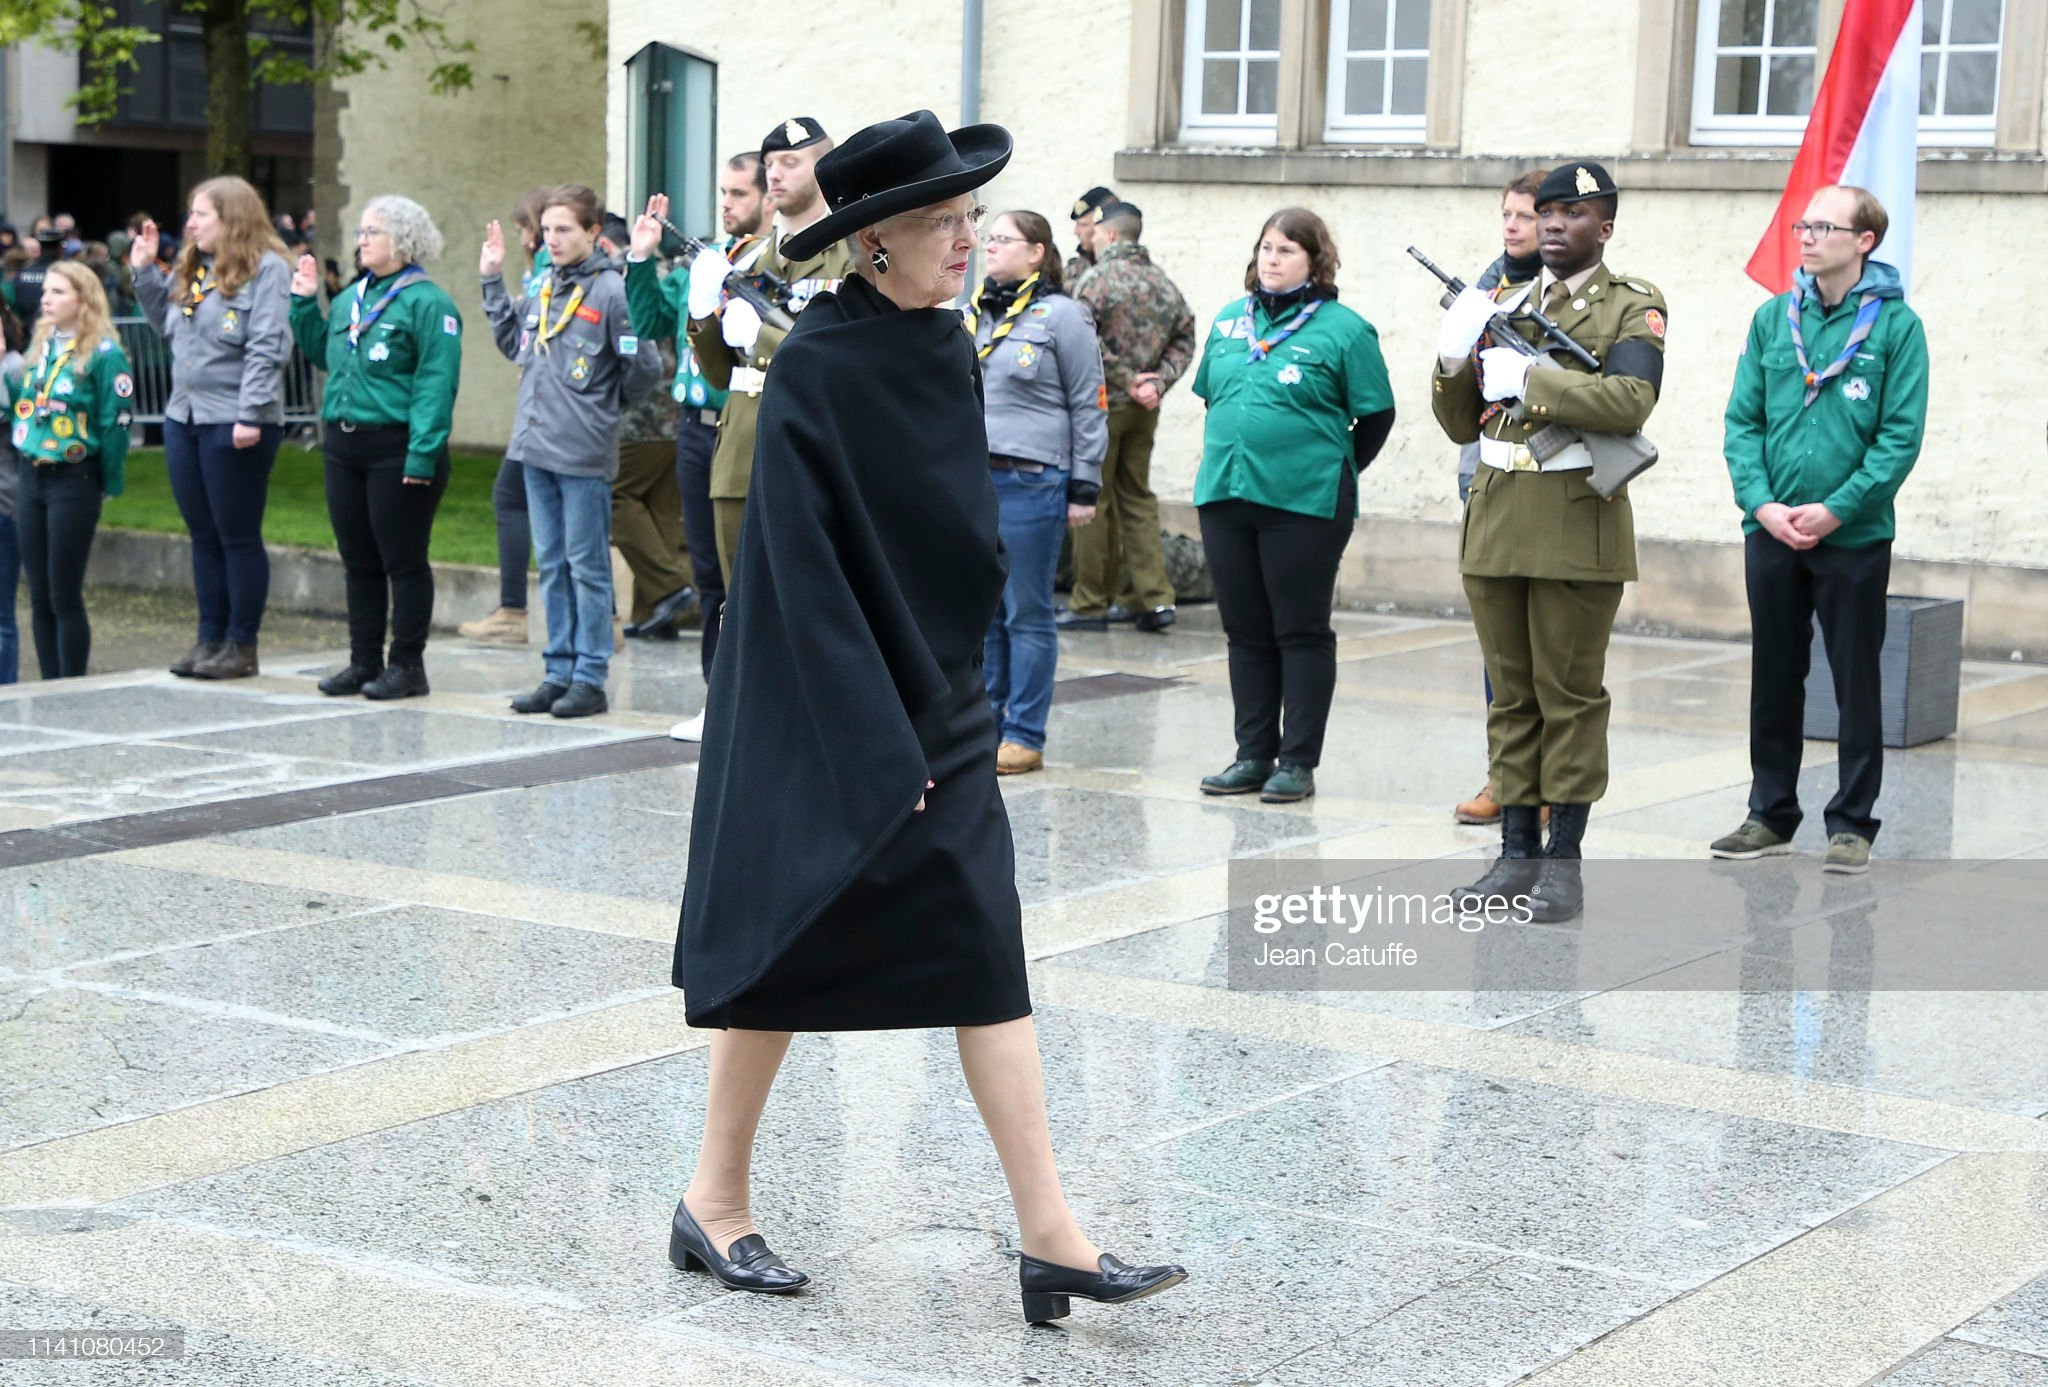 Похороны Великого Герцога Жана https://media.gettyimages.com/photos/queen-margrethe-ii-of-denmark-arrives-for-the-funeral-of-grand-duke-picture-id1141080452?s=2048x2048